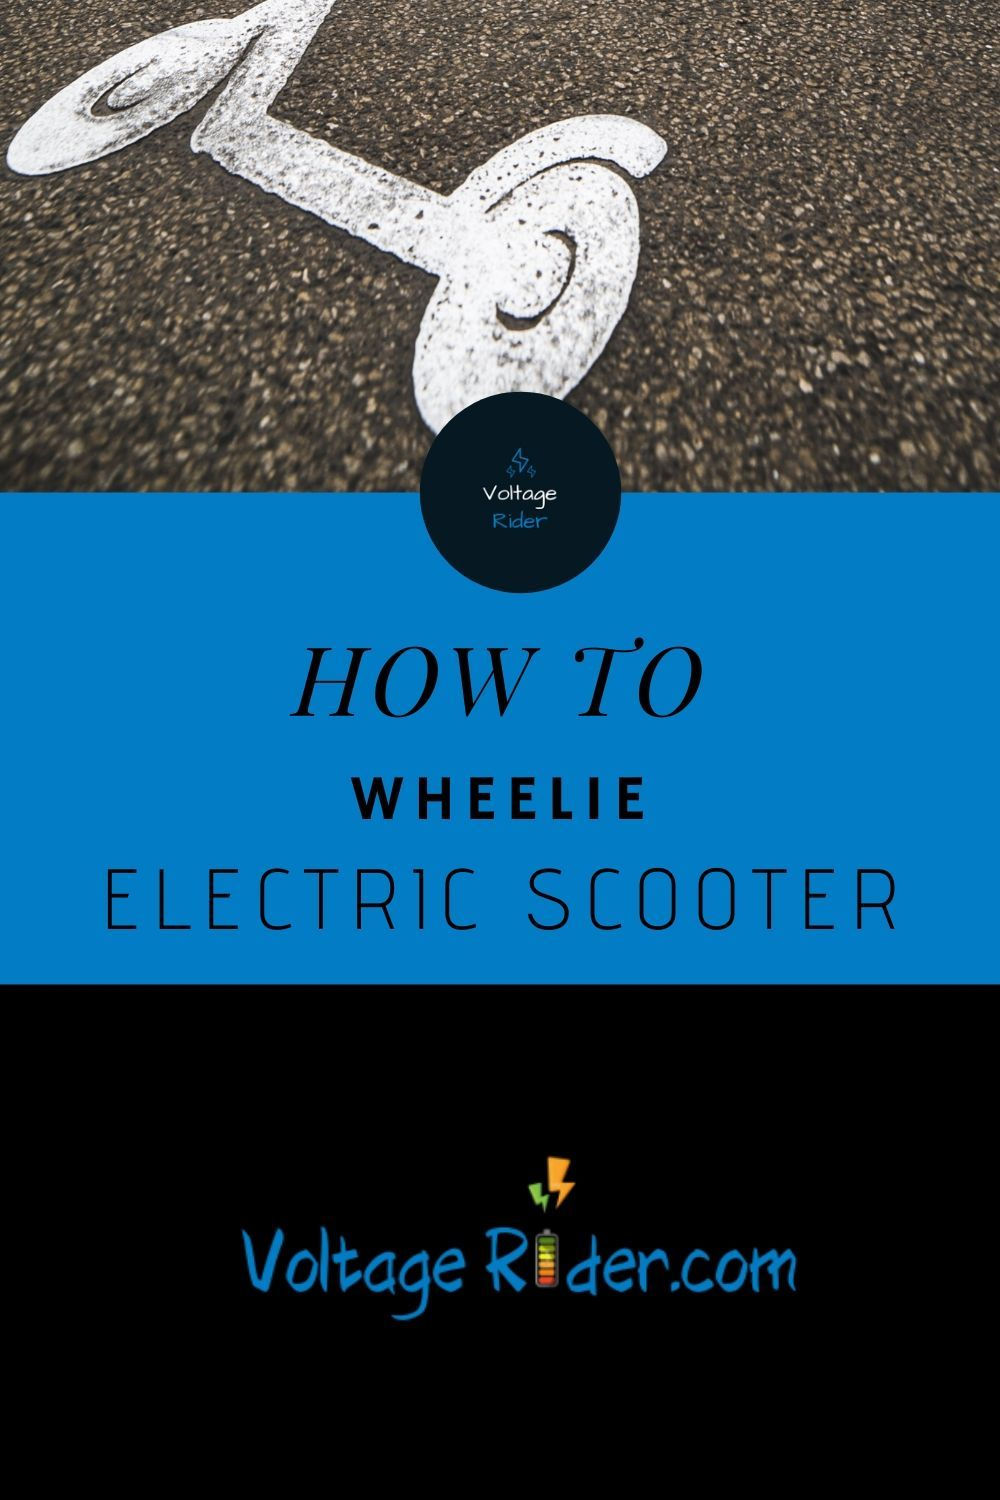 You're going to see how experts are doing wheelie on electric scooter. These are experts that are using electric scooter safety gear. Learn from them and be careful. They are using Razor electric scooters and some 1000W, 2000W electric scooters as well...  #electricscooter #escooter #electricscooters #escooters #voltagerider #electricscooterwheelie #escooterwheelie #escootertricks #electricscootertricks #electricscootertips #escootertips #wheelie #wheeliescooter #scooterwheelie #urbanmobility